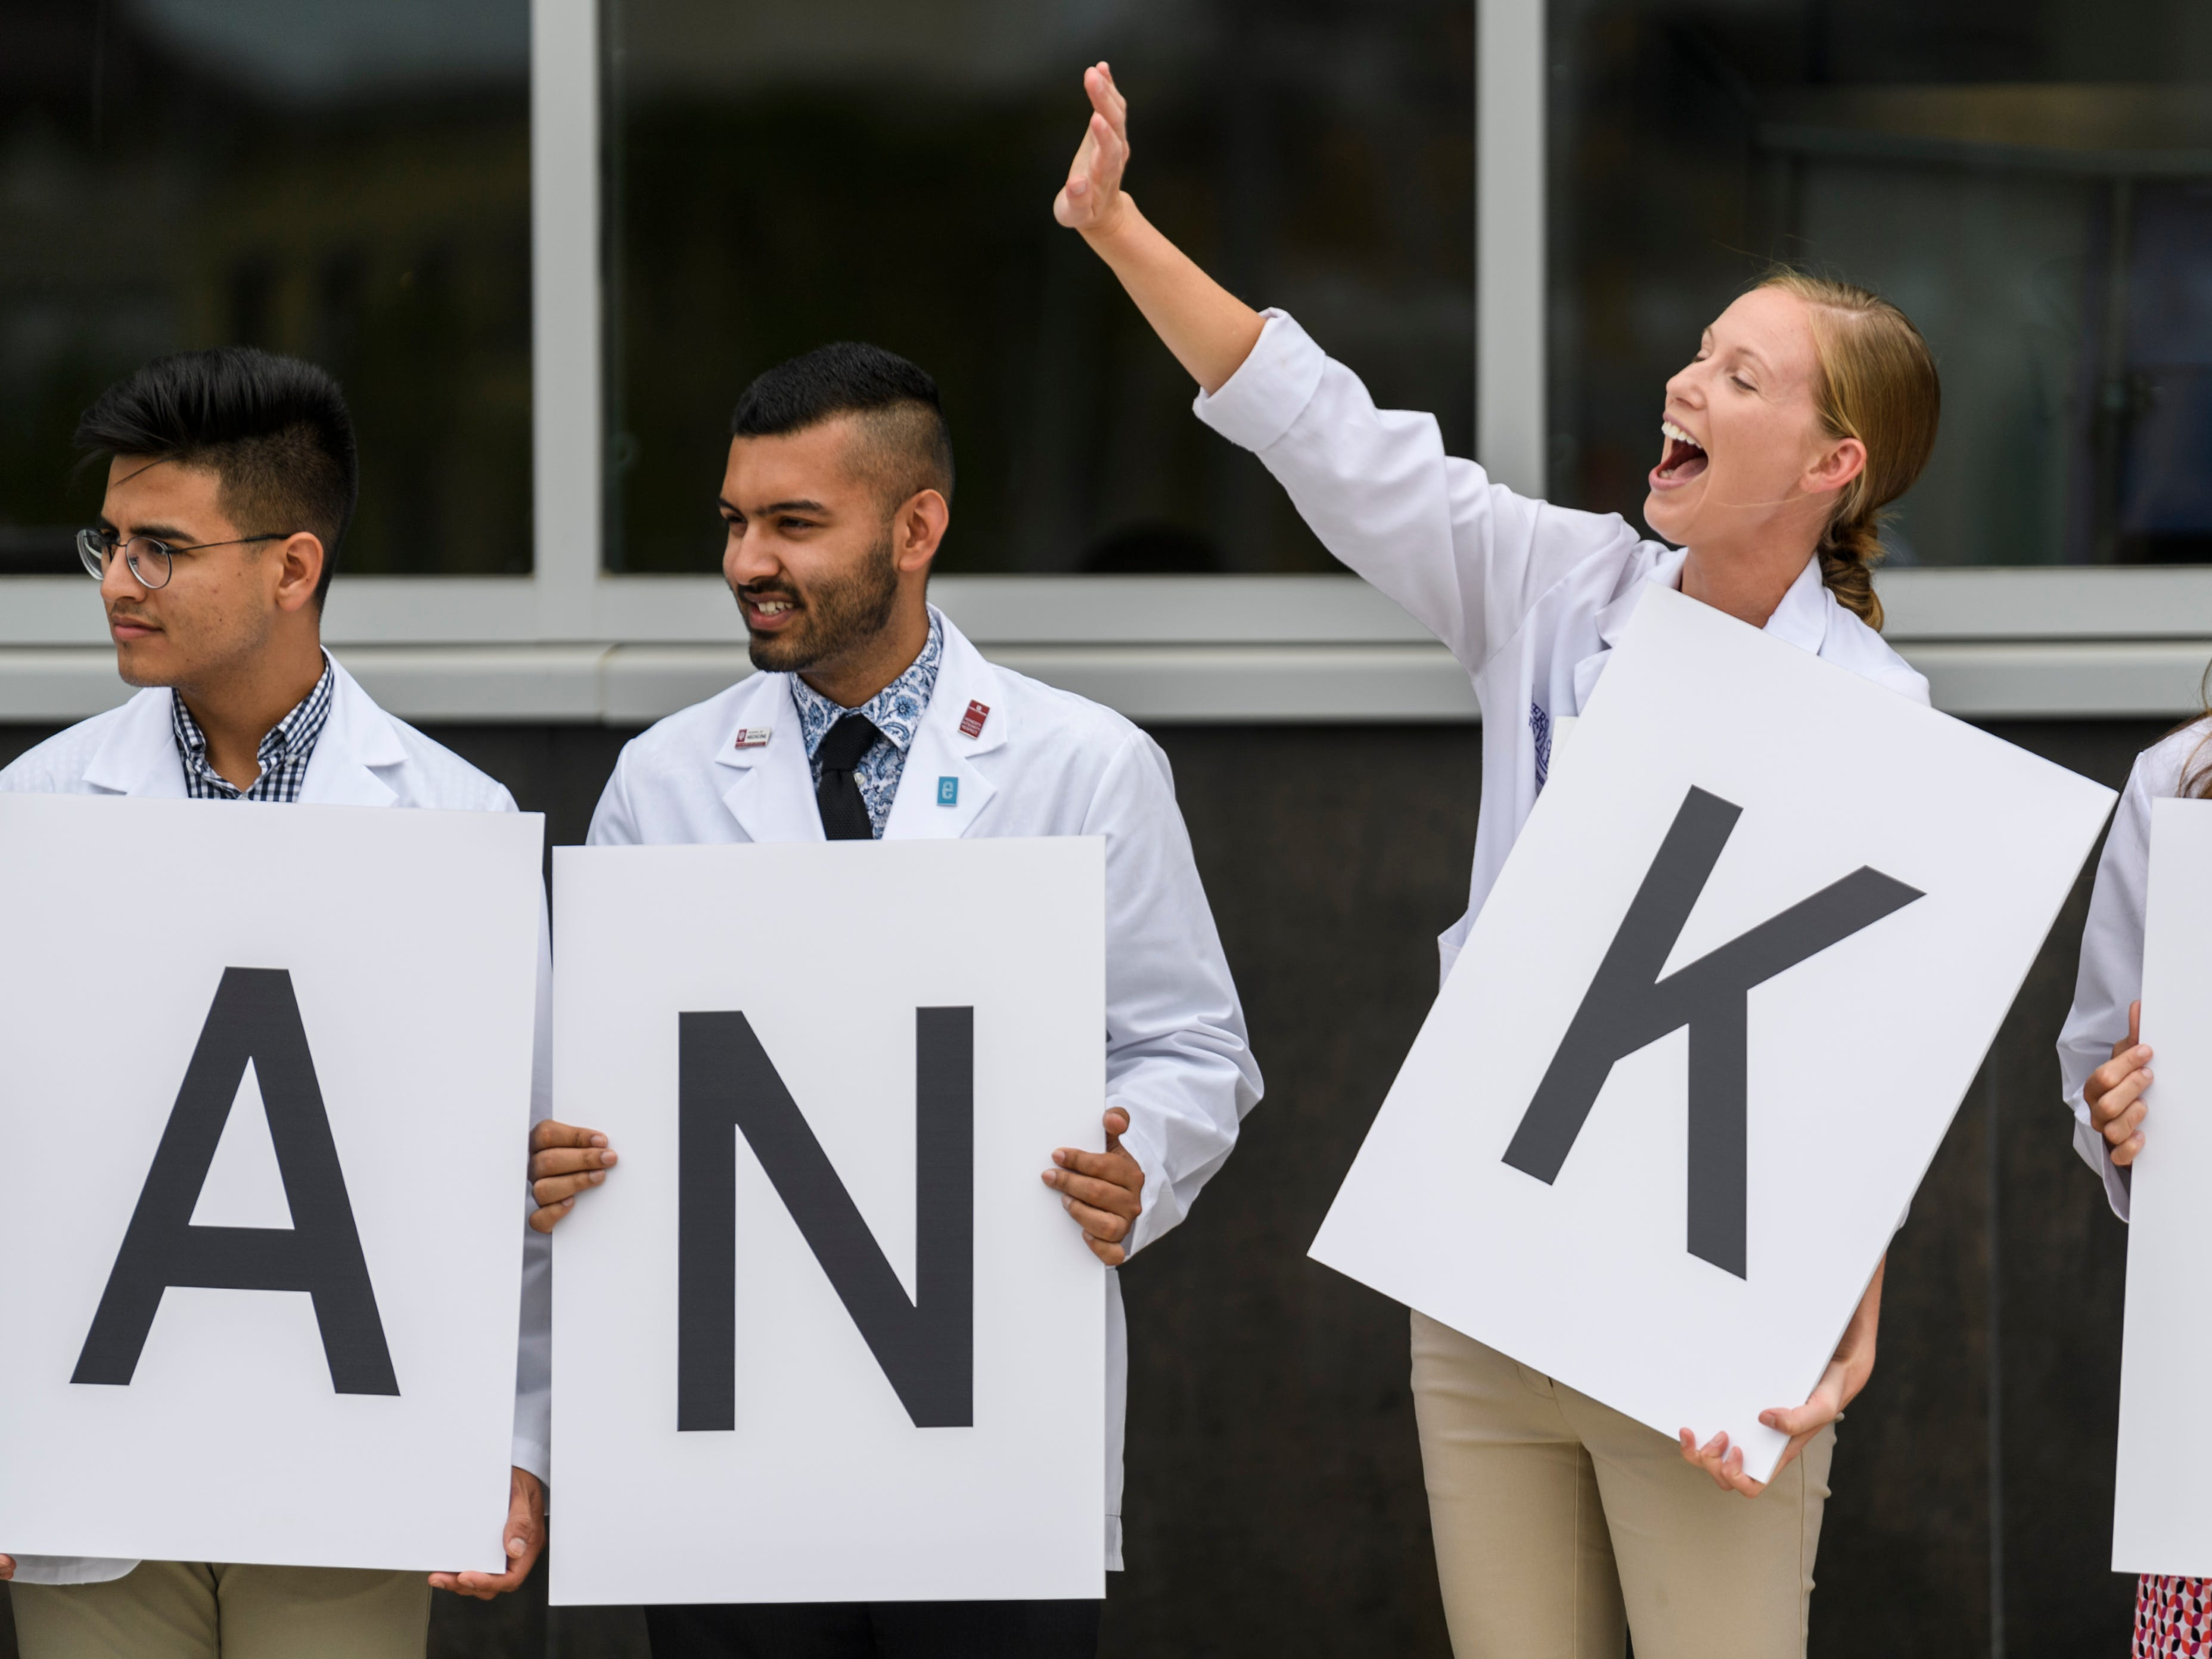 """Kelsey Hipp, second from right, a physician assistant student from the University of Evansville, waves to a friend as she and other students hold up letters that spell out """"thank you Stone family"""" during the ribbon cutting ceremony for the Stone Family Center for Health Sciences, Thursday afternoon, Aug. 9, 2018. The building is named for William and Mary Stone, who made a $15 million gift to support the health sciences center and multi-institutional partnership between Indiana University's School of Medicine, UE, the University of Southern Indiana."""